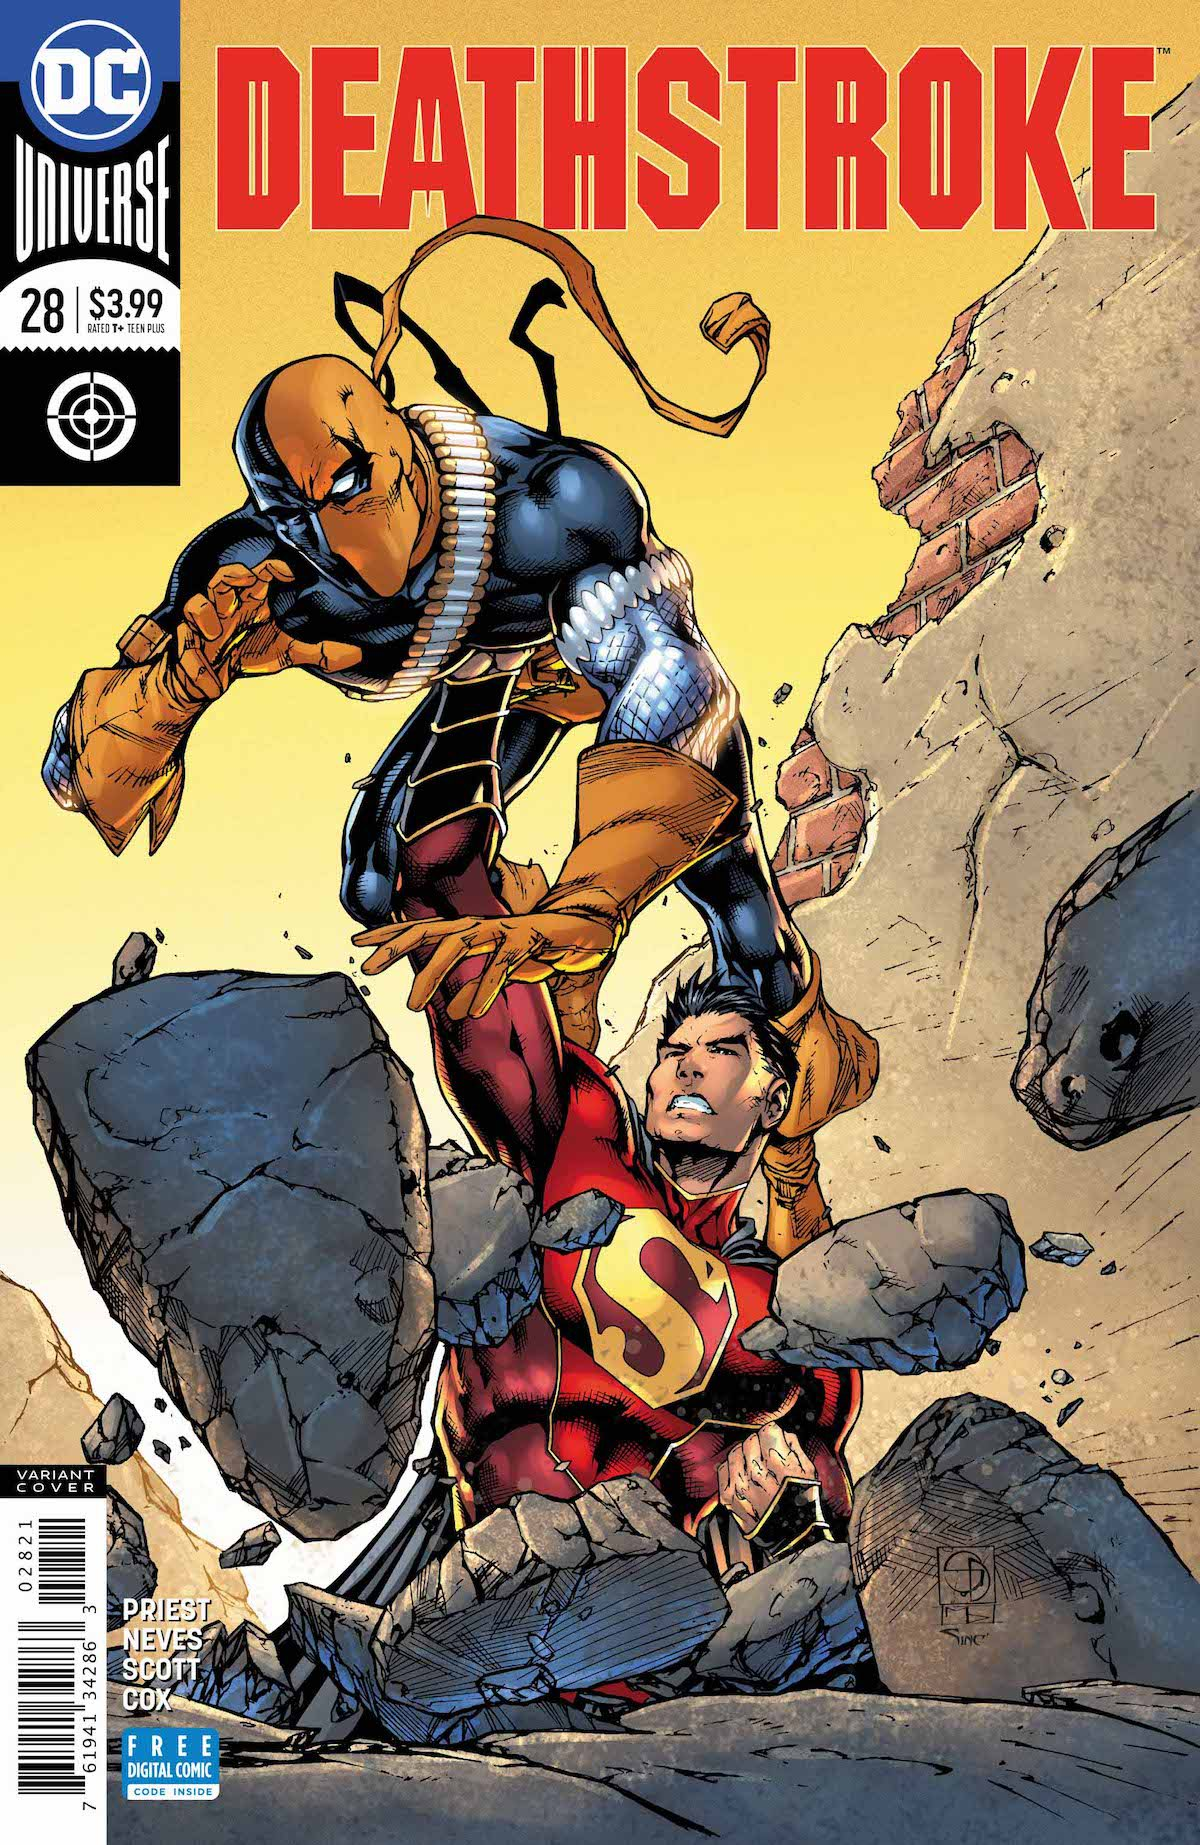 Deathstroke #28 variant cover